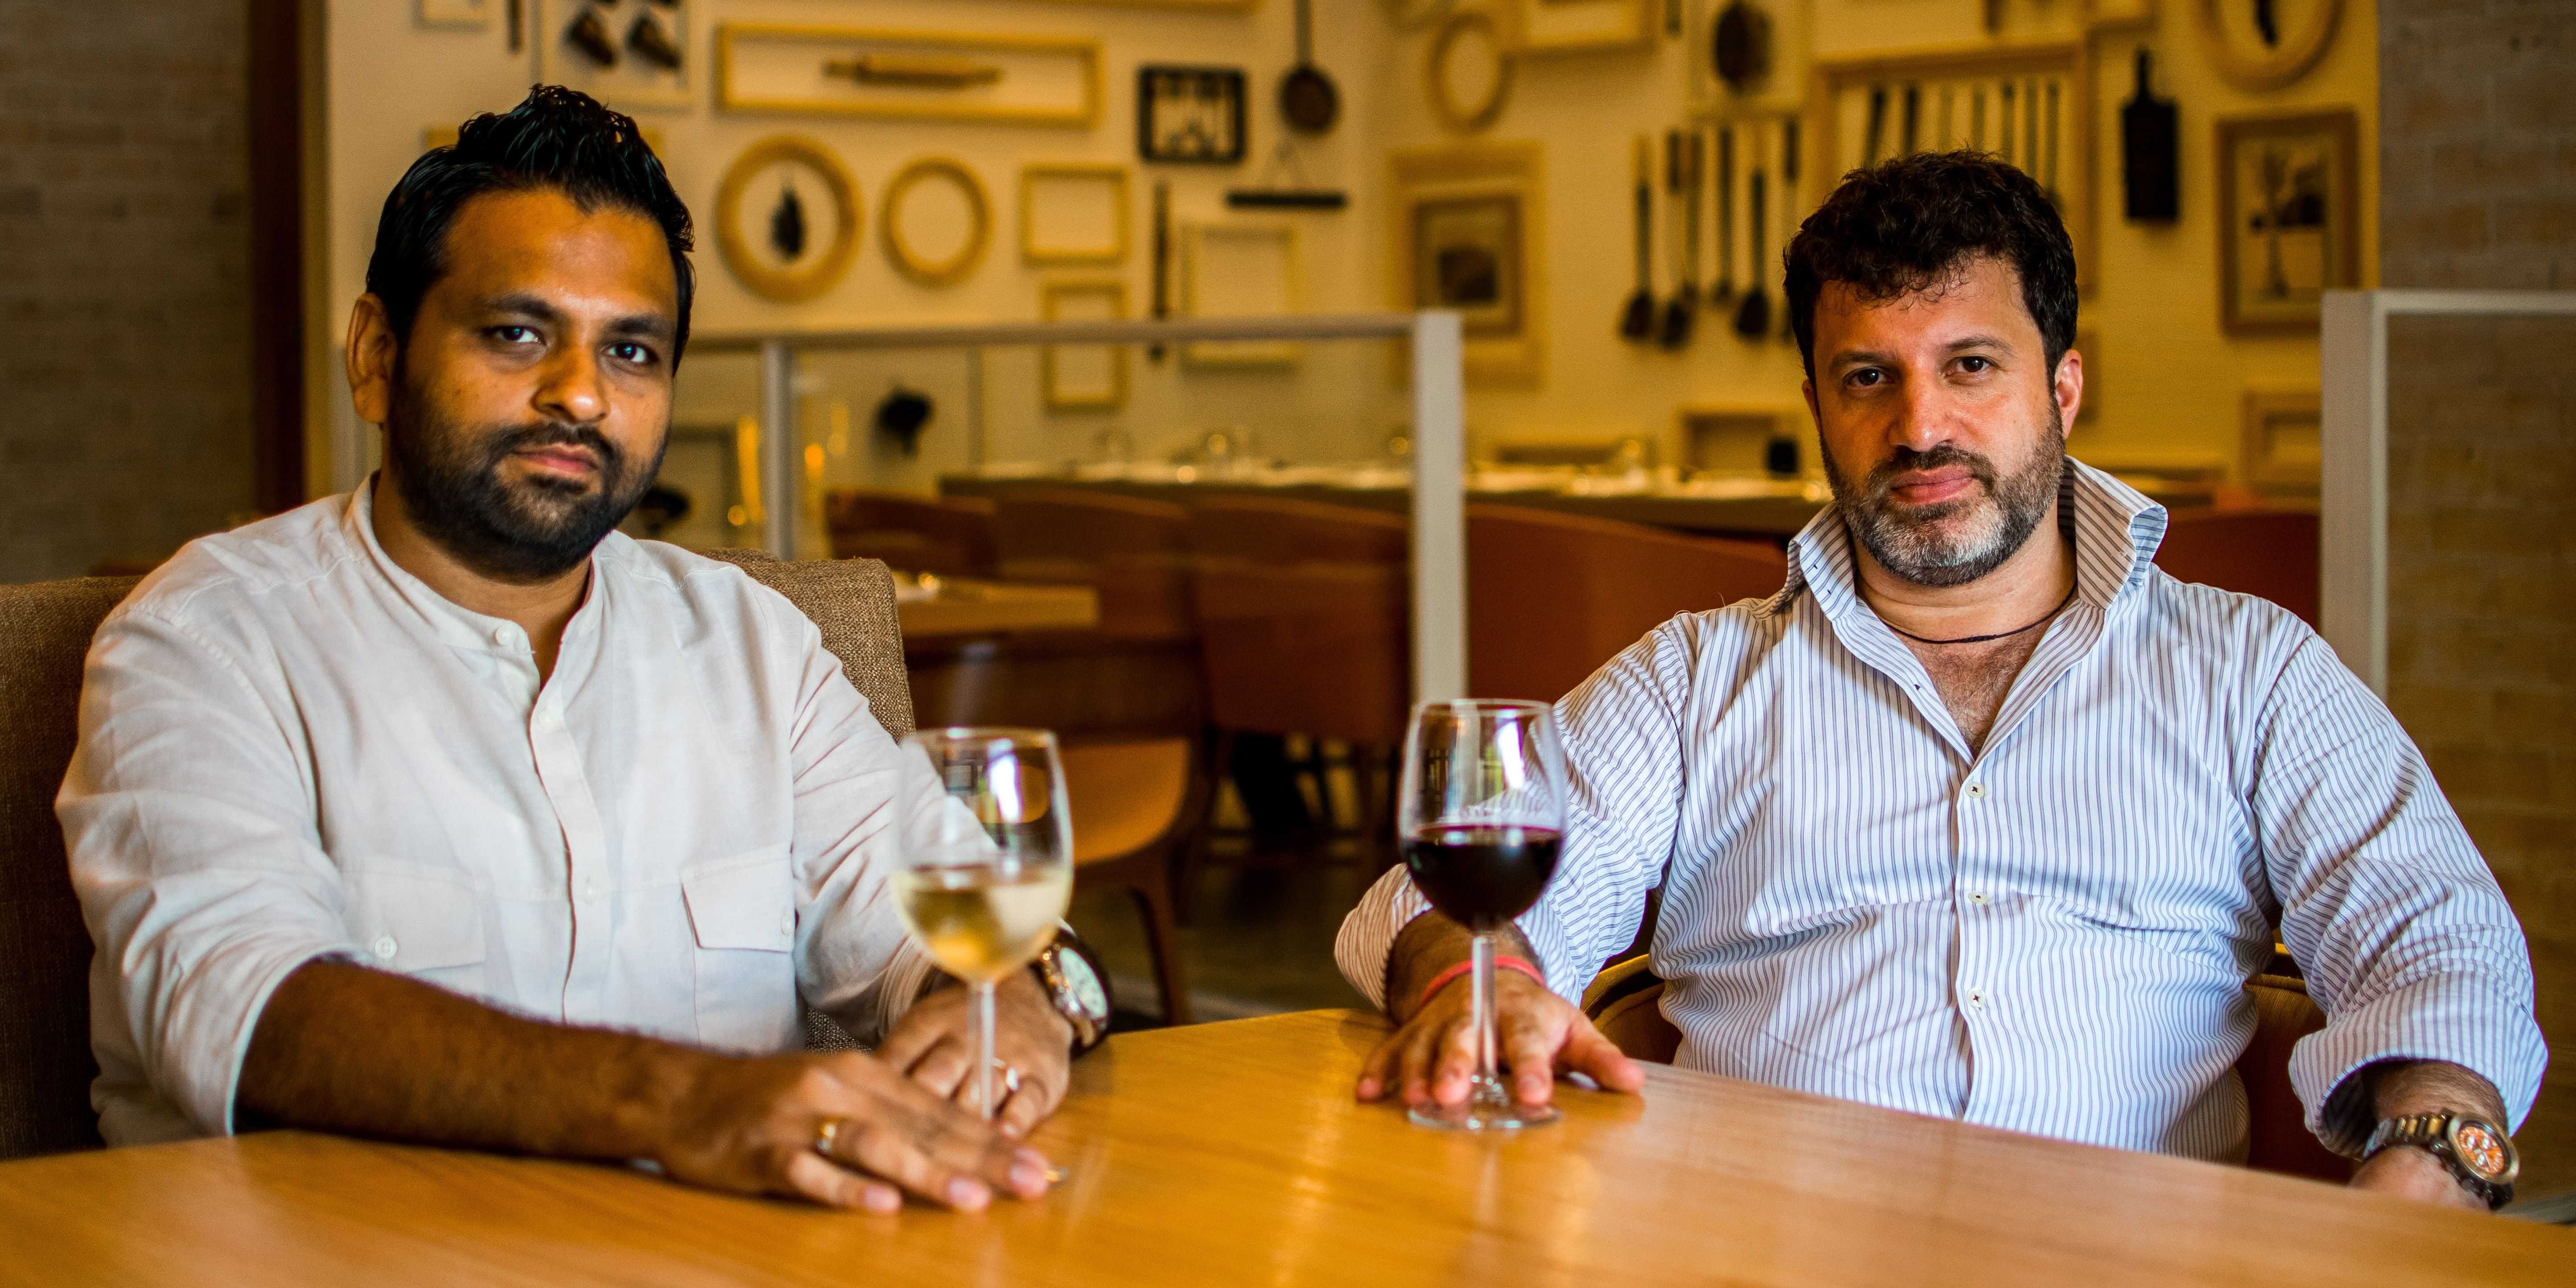 The owners - Prashant Issar and Anuj Shah